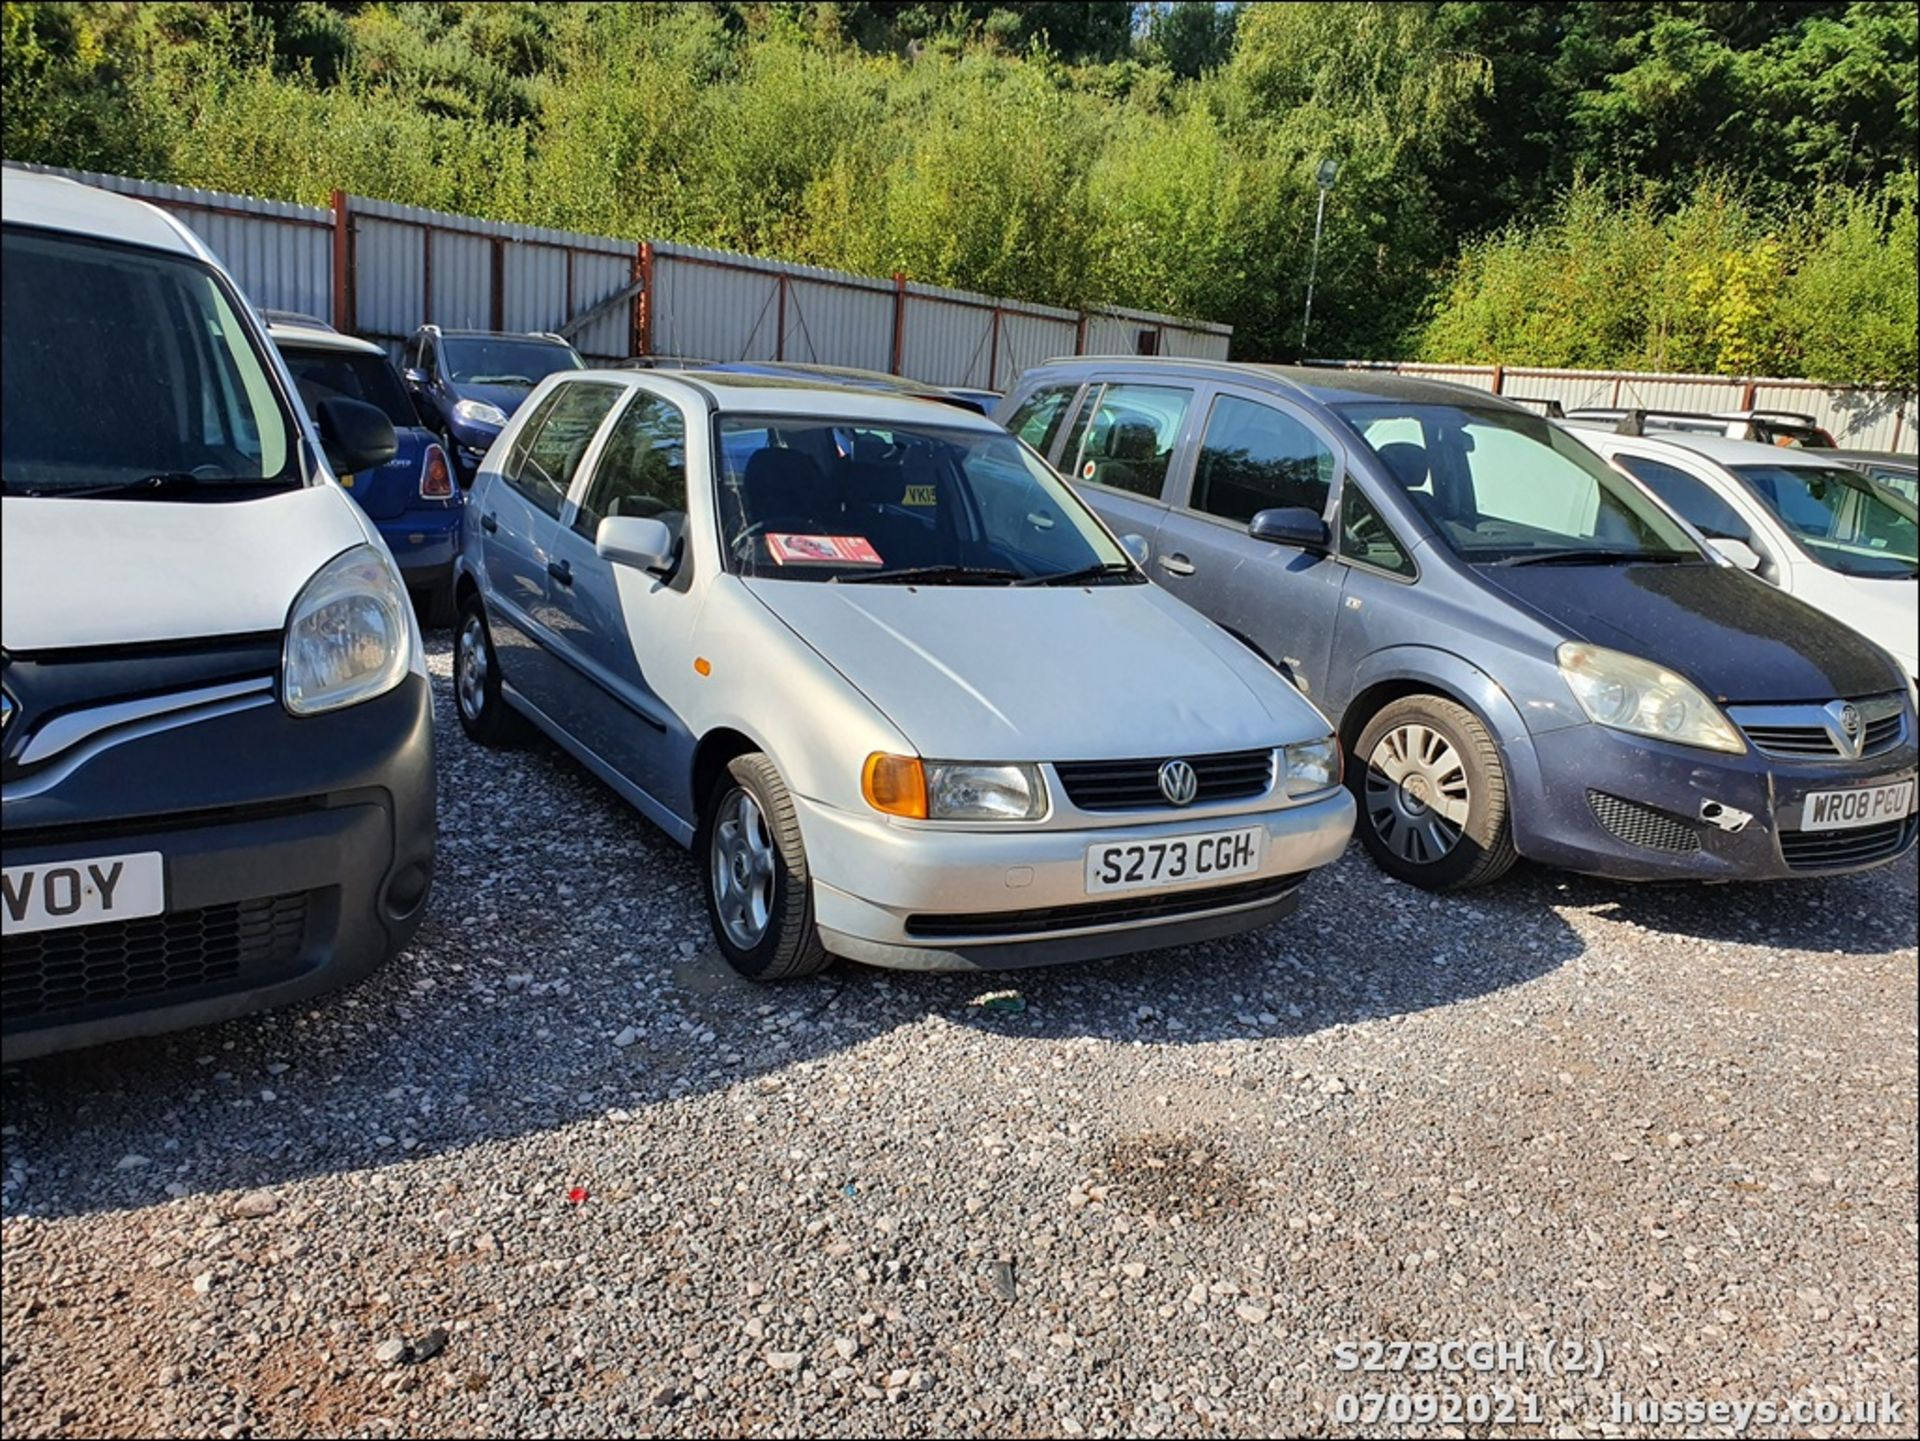 1998 VOLKSWAGEN POLO 1.6 GL AUTO - 1598cc 5dr Hatchback (Silver, 113k) - Image 2 of 13